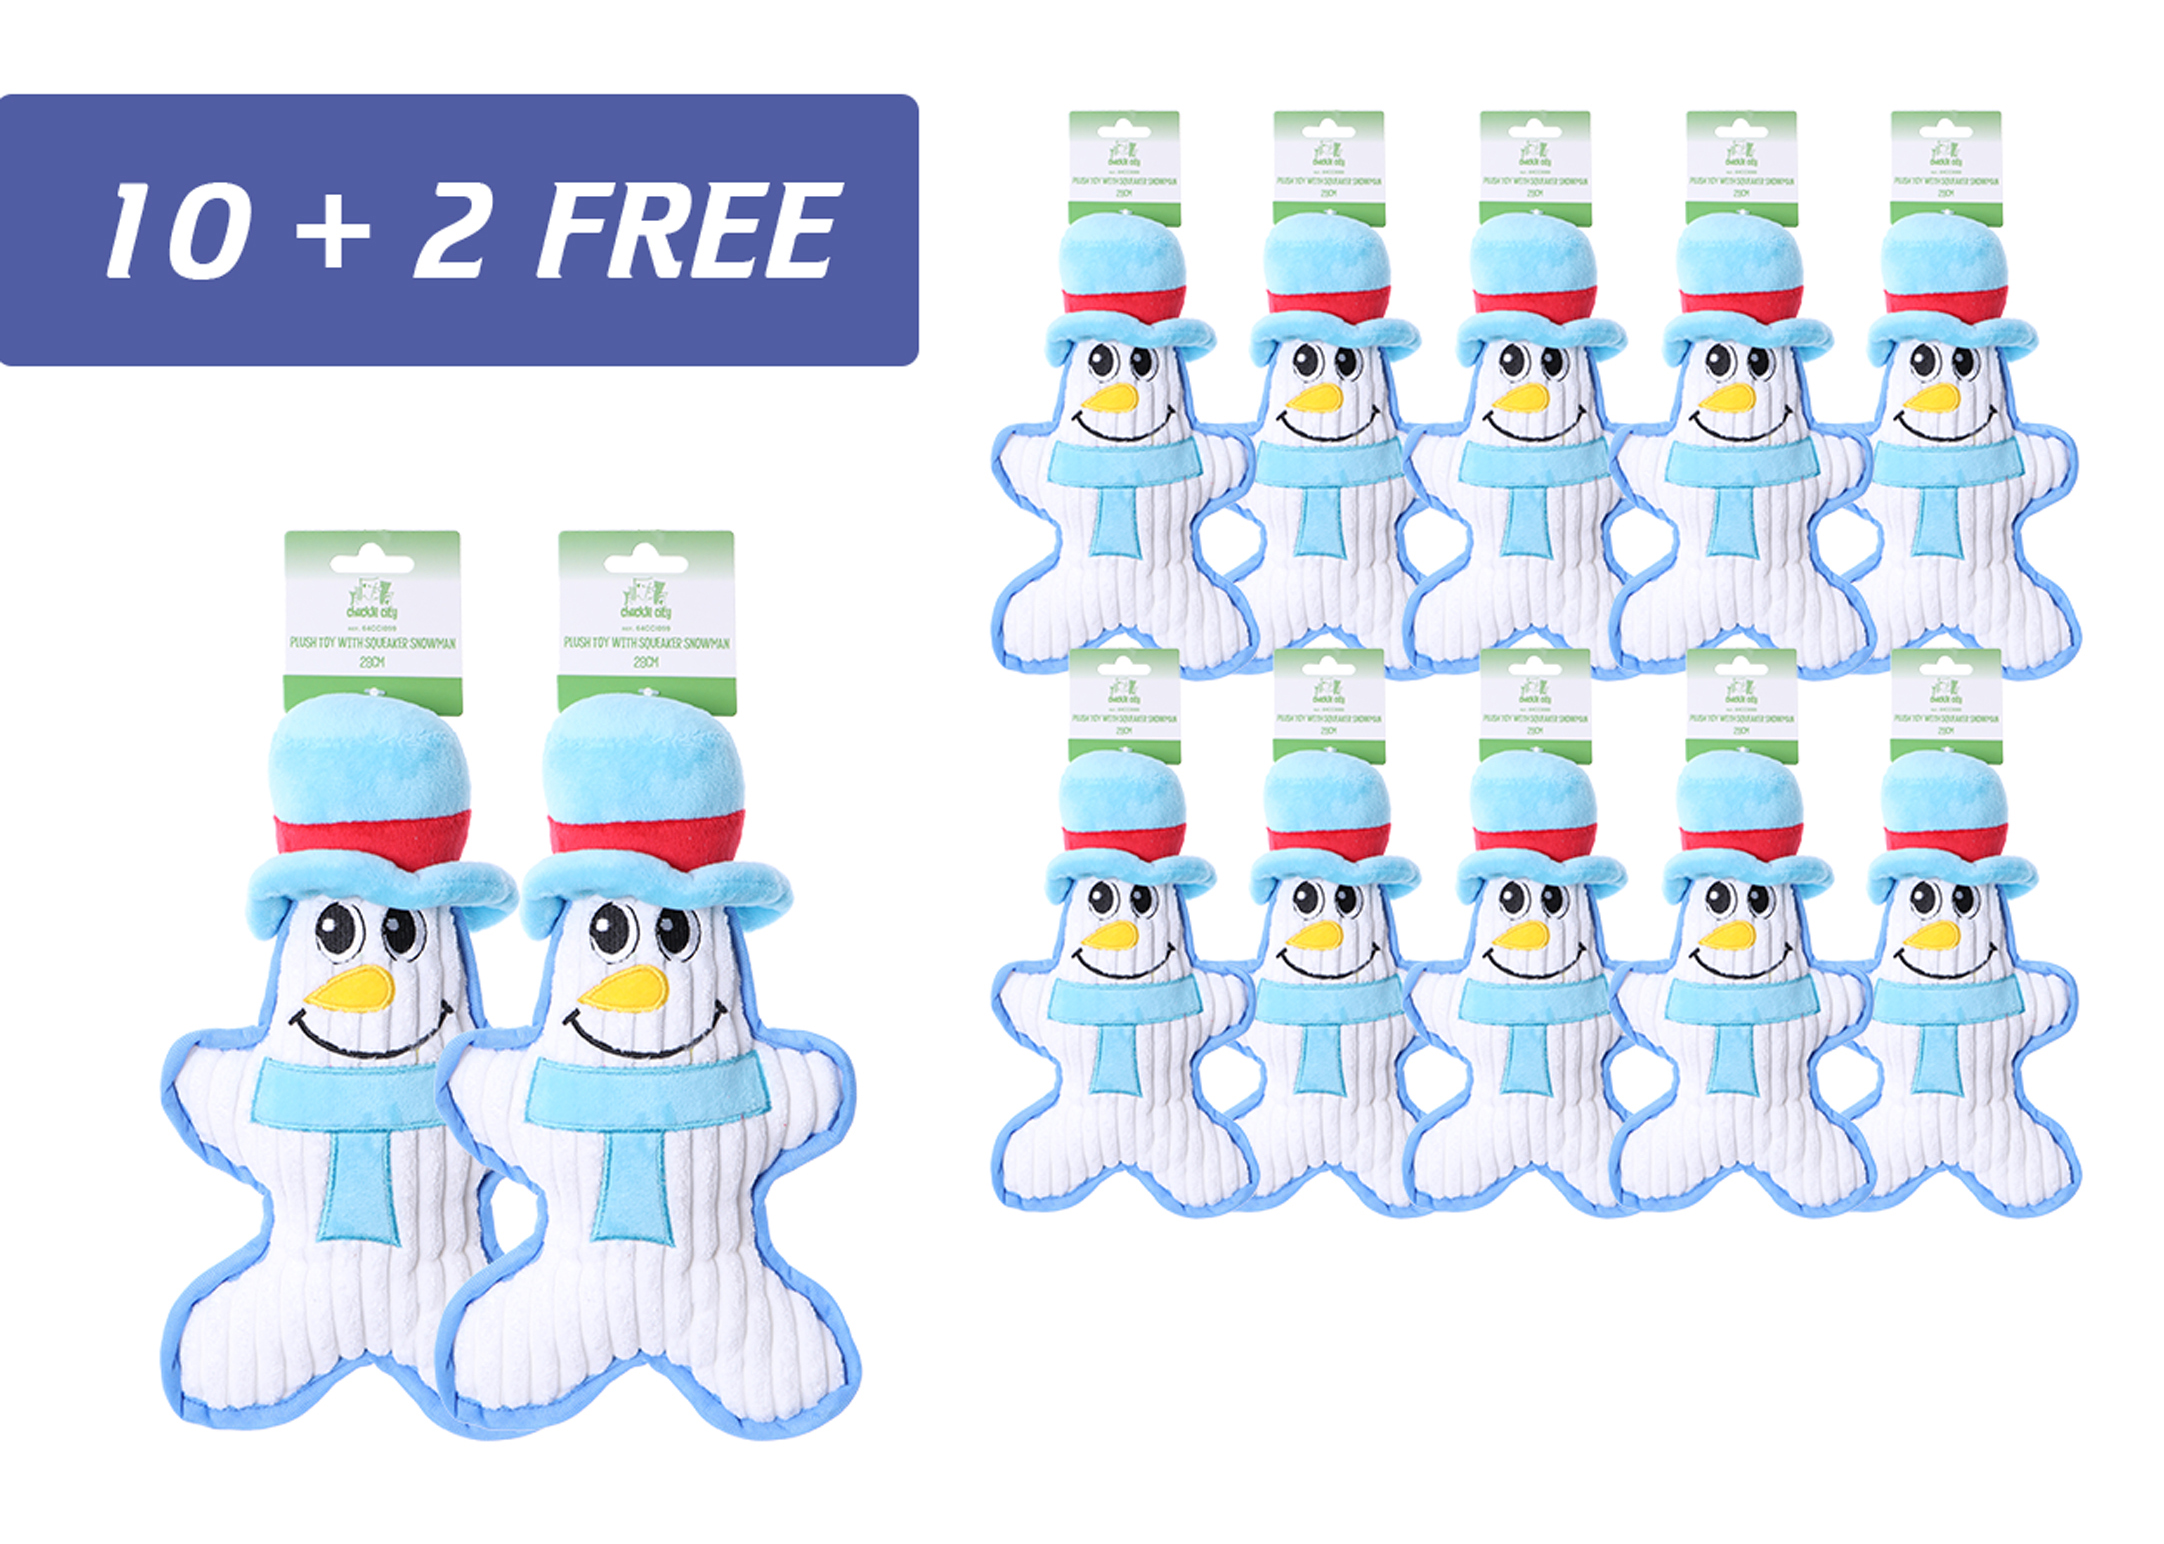 Chuckle City promo 10+2 free Plush Toy with Squeaker Snowman 28 cm